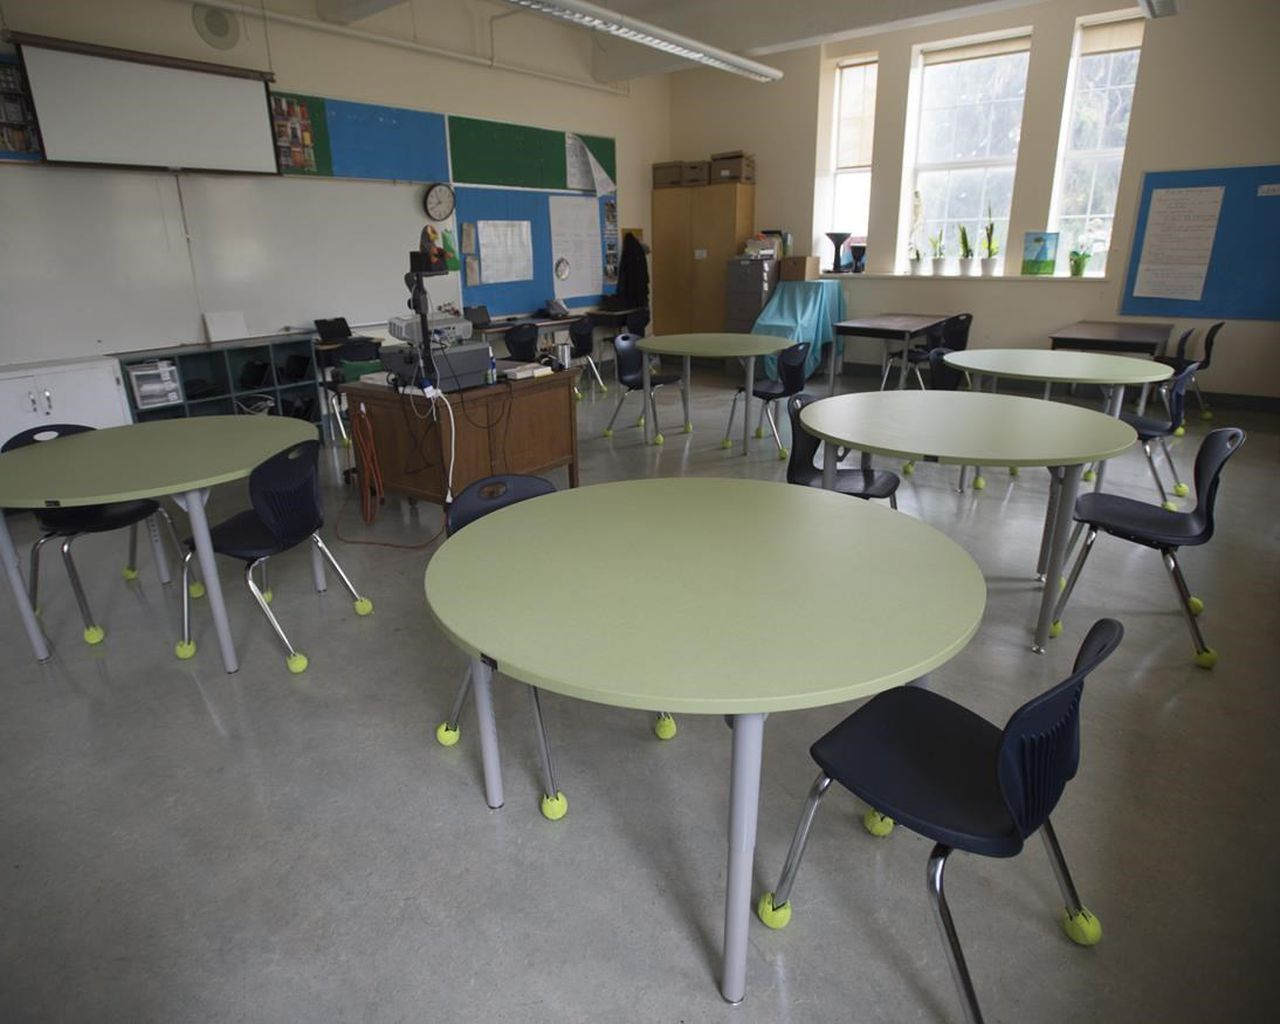 Experts say student mental wellness should be top priority as kids return to class